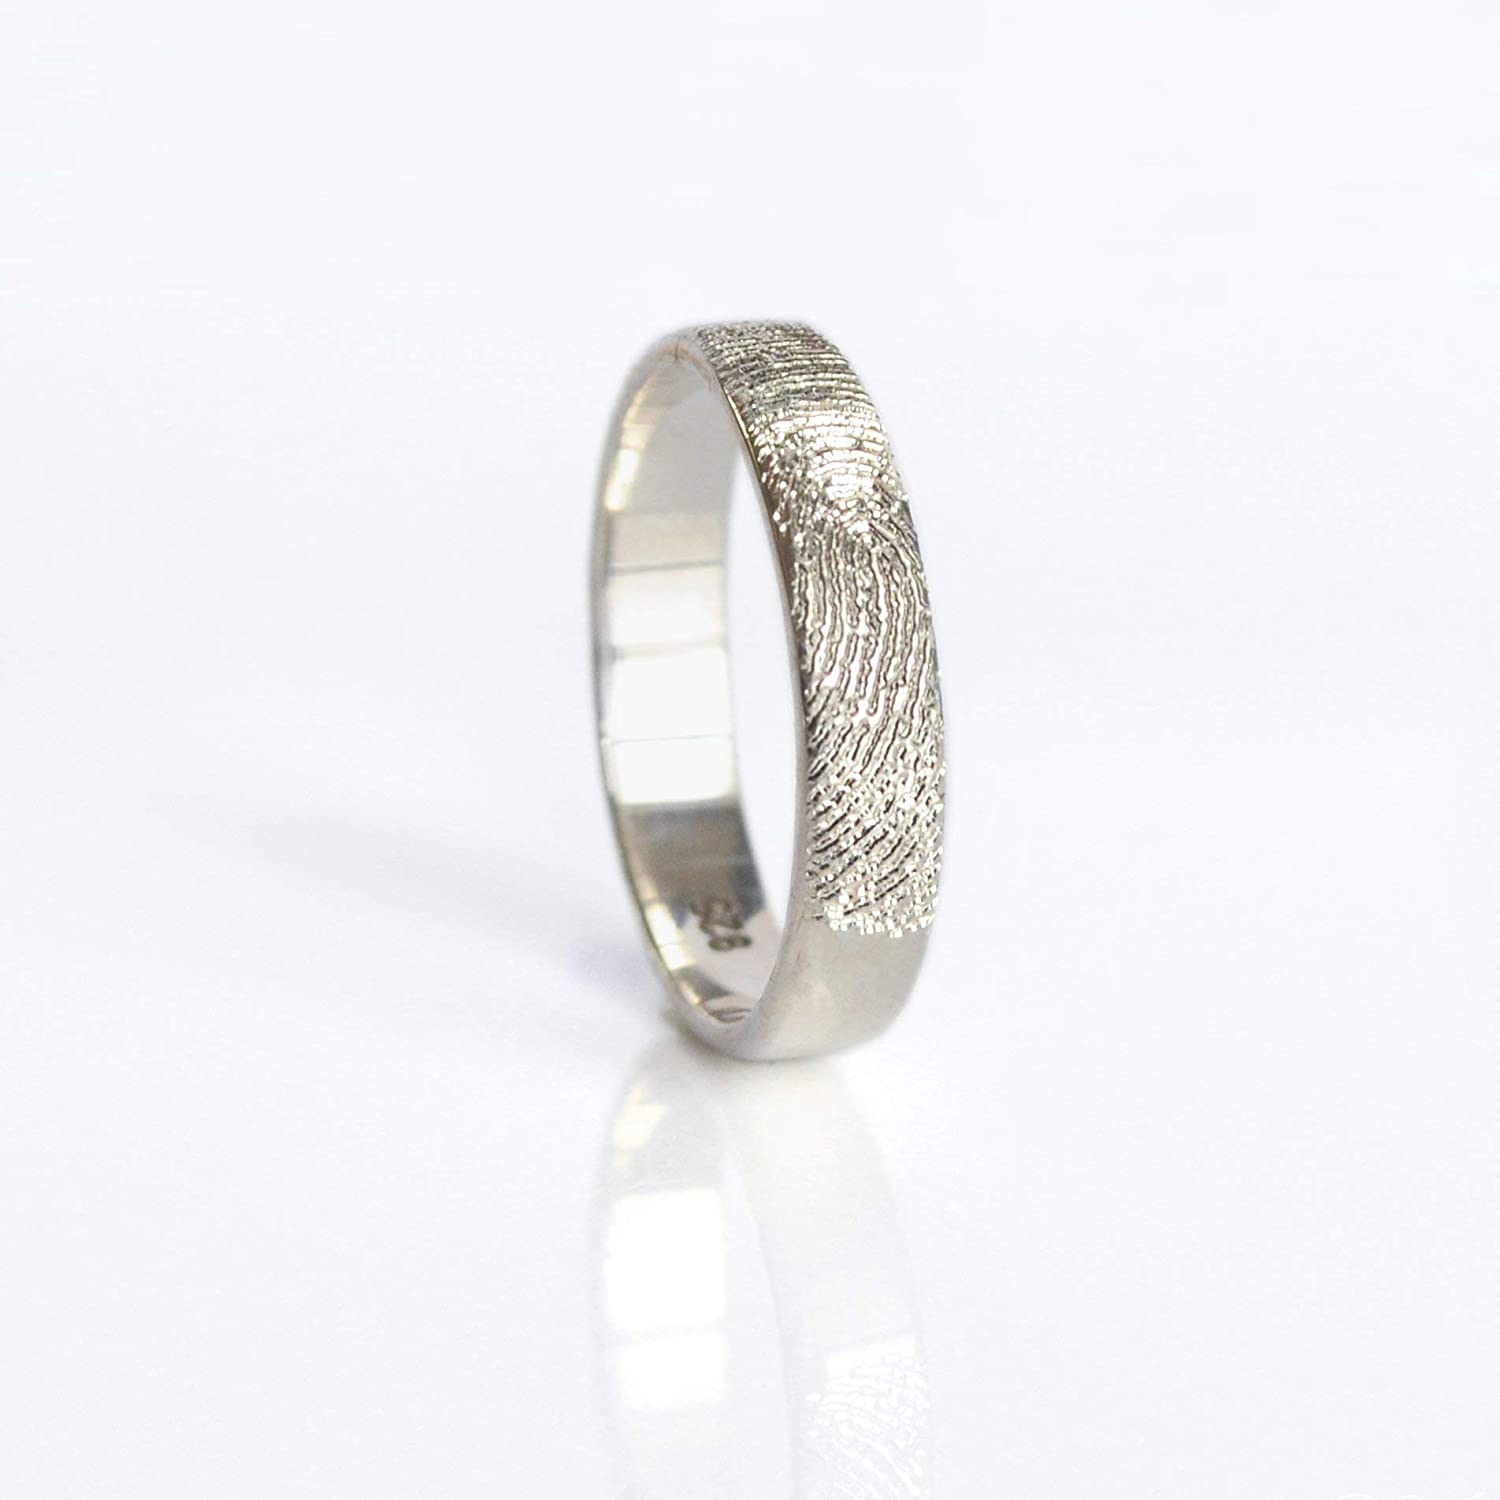 Actual Fingerprint or Handwriting Ring Engraved From Photograph - Available in Vermeil Gold, Vermeil Rose Gold, or Sterling Silver [R4] 617YM7soDsL